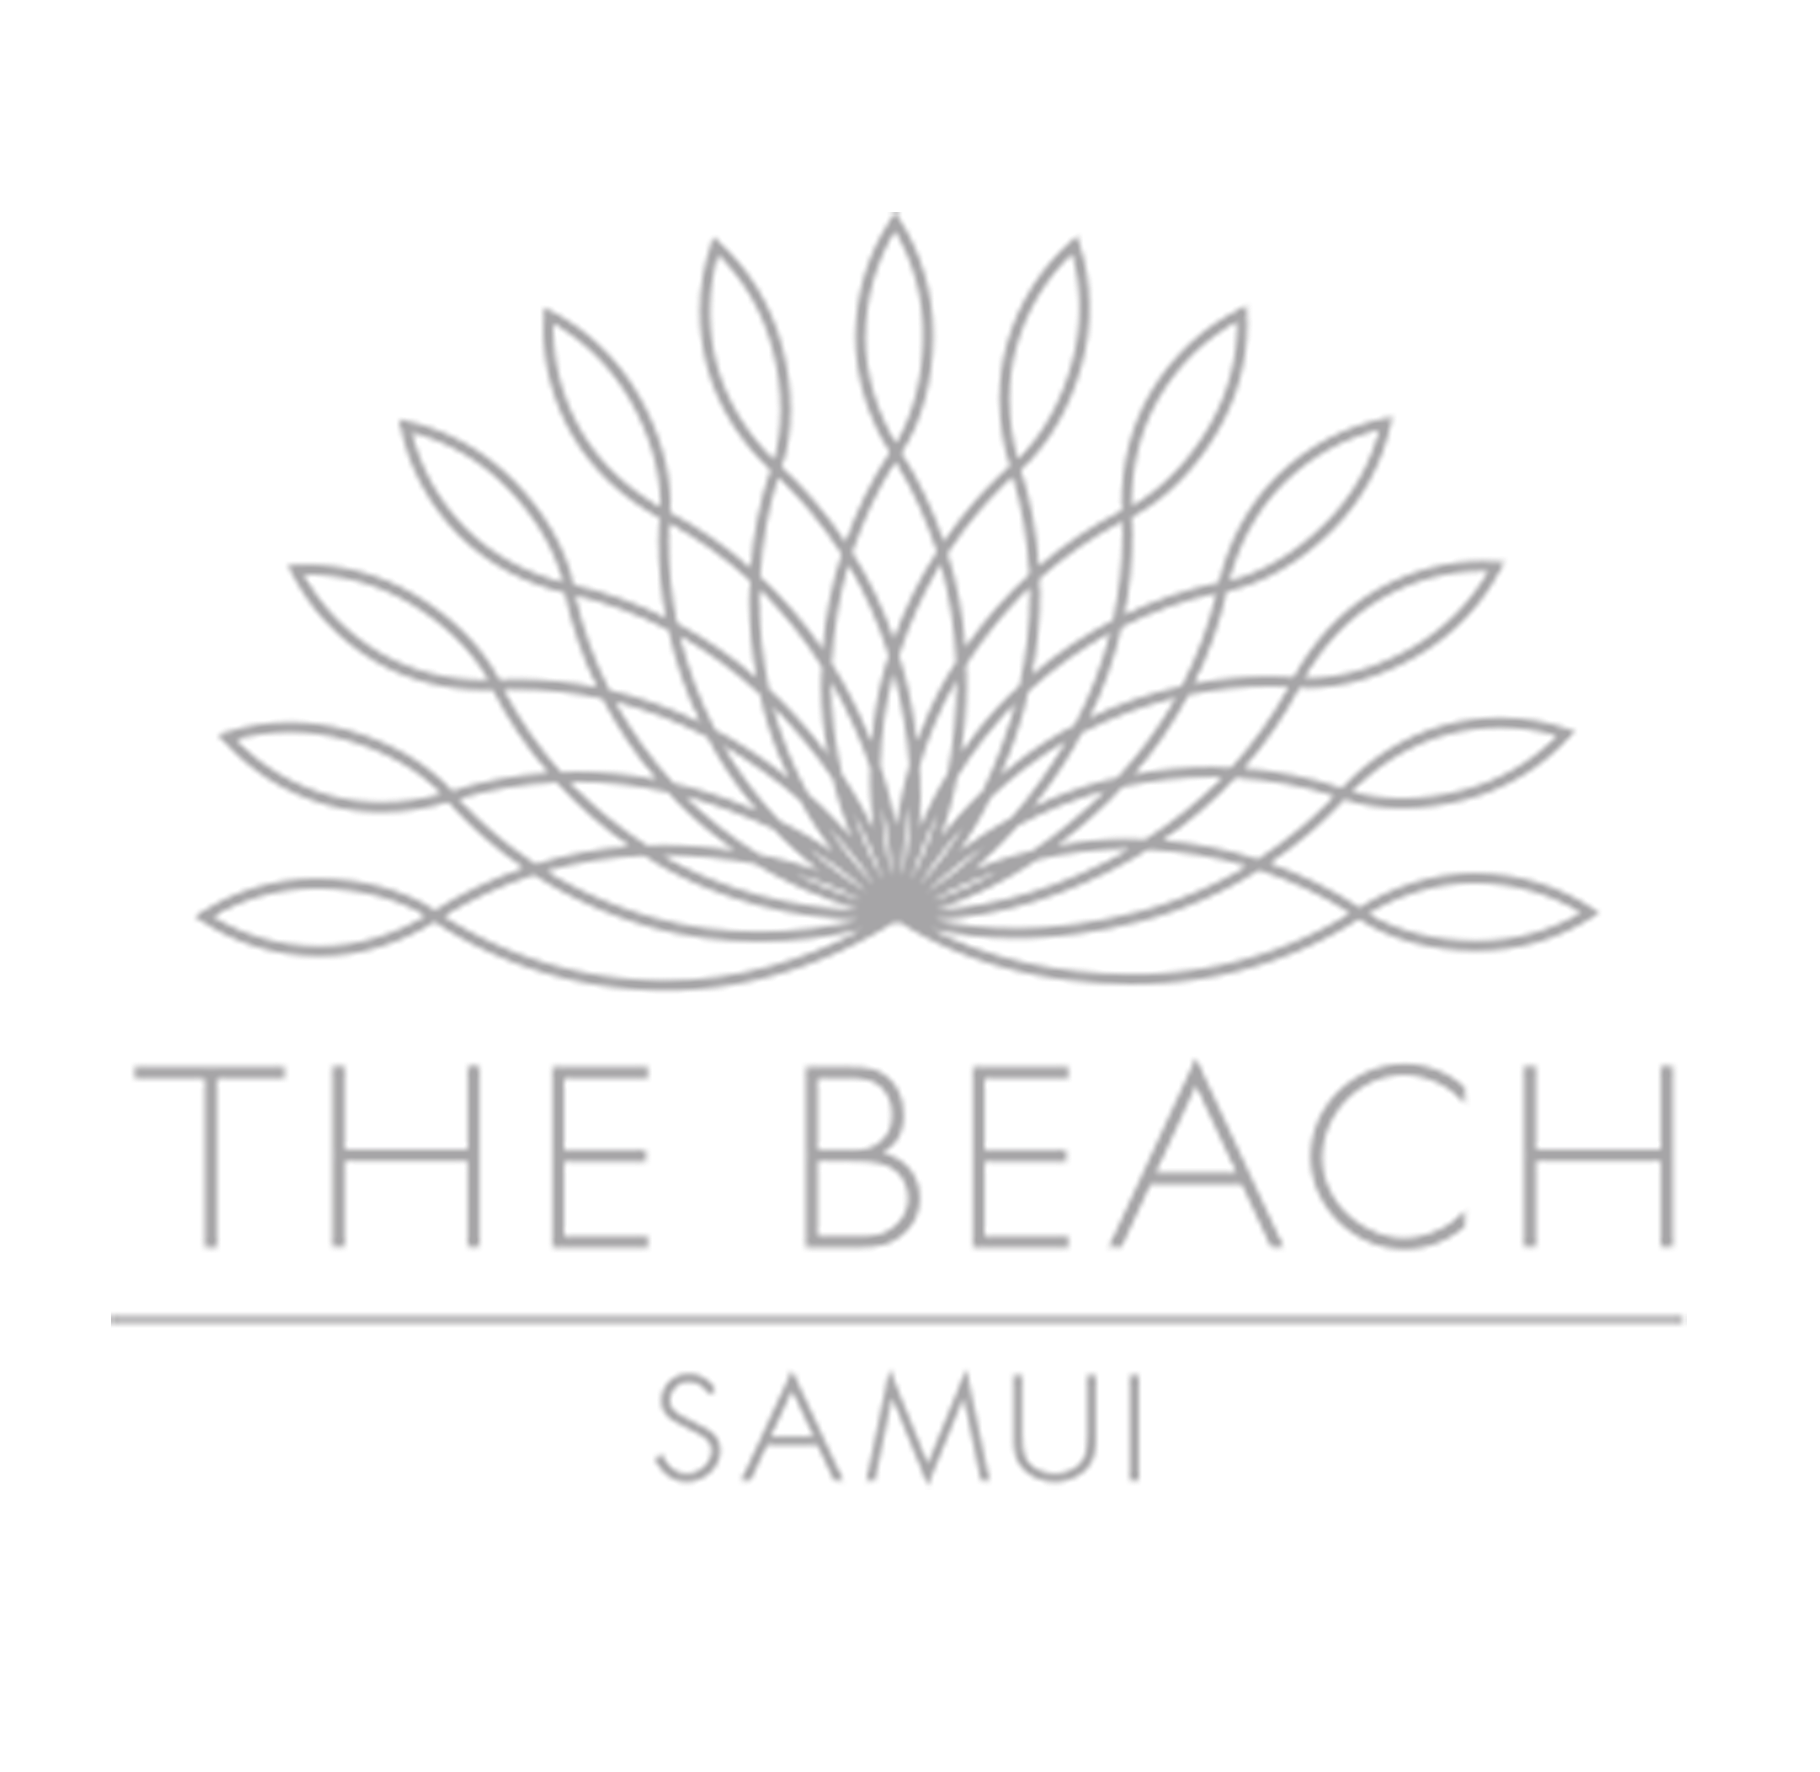 The Beach Samui